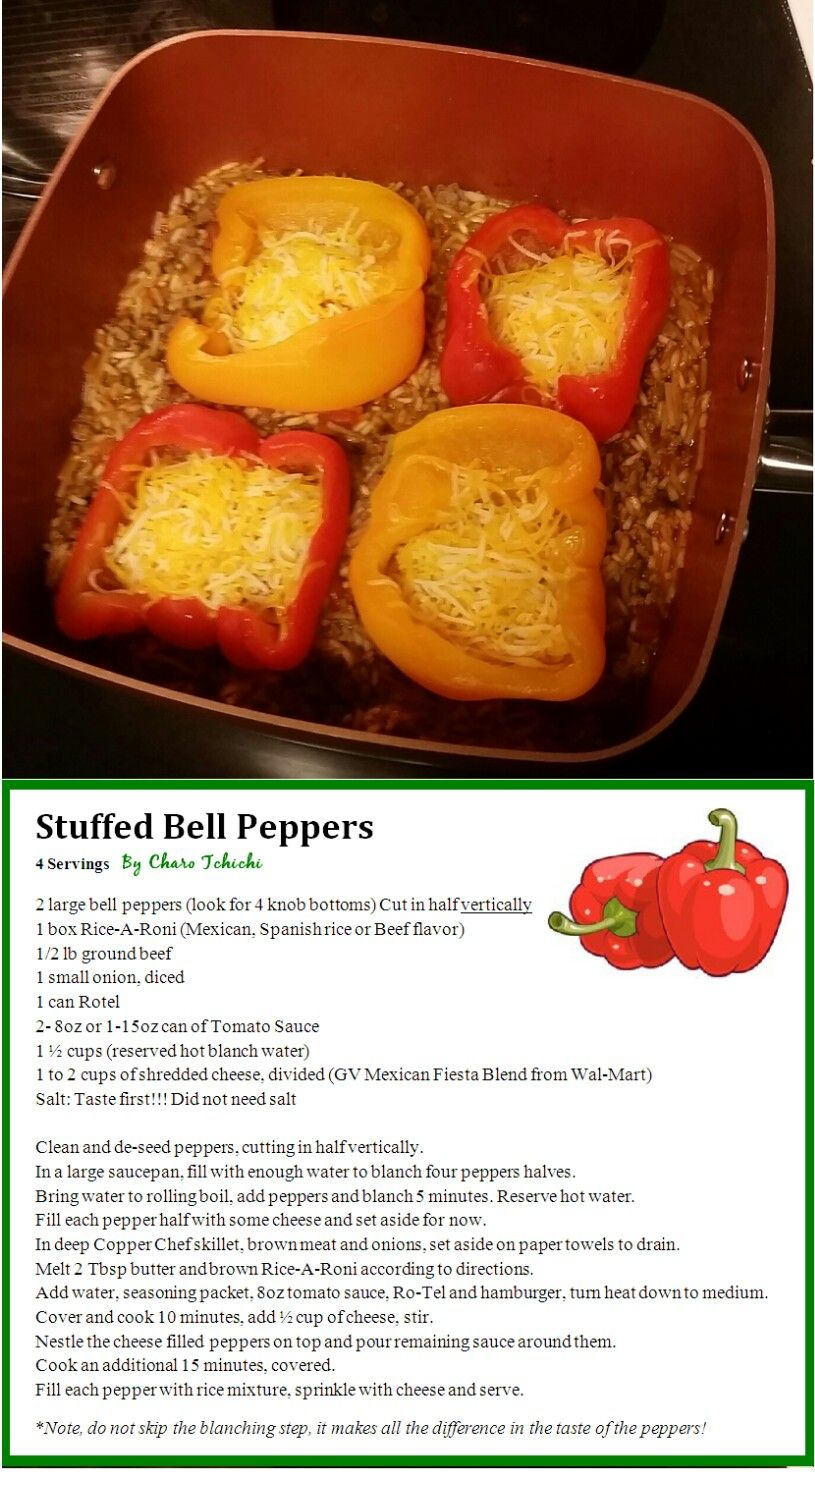 Stuffed Bell Peppers Easy Delicious One Pan Recipe Using Rice A